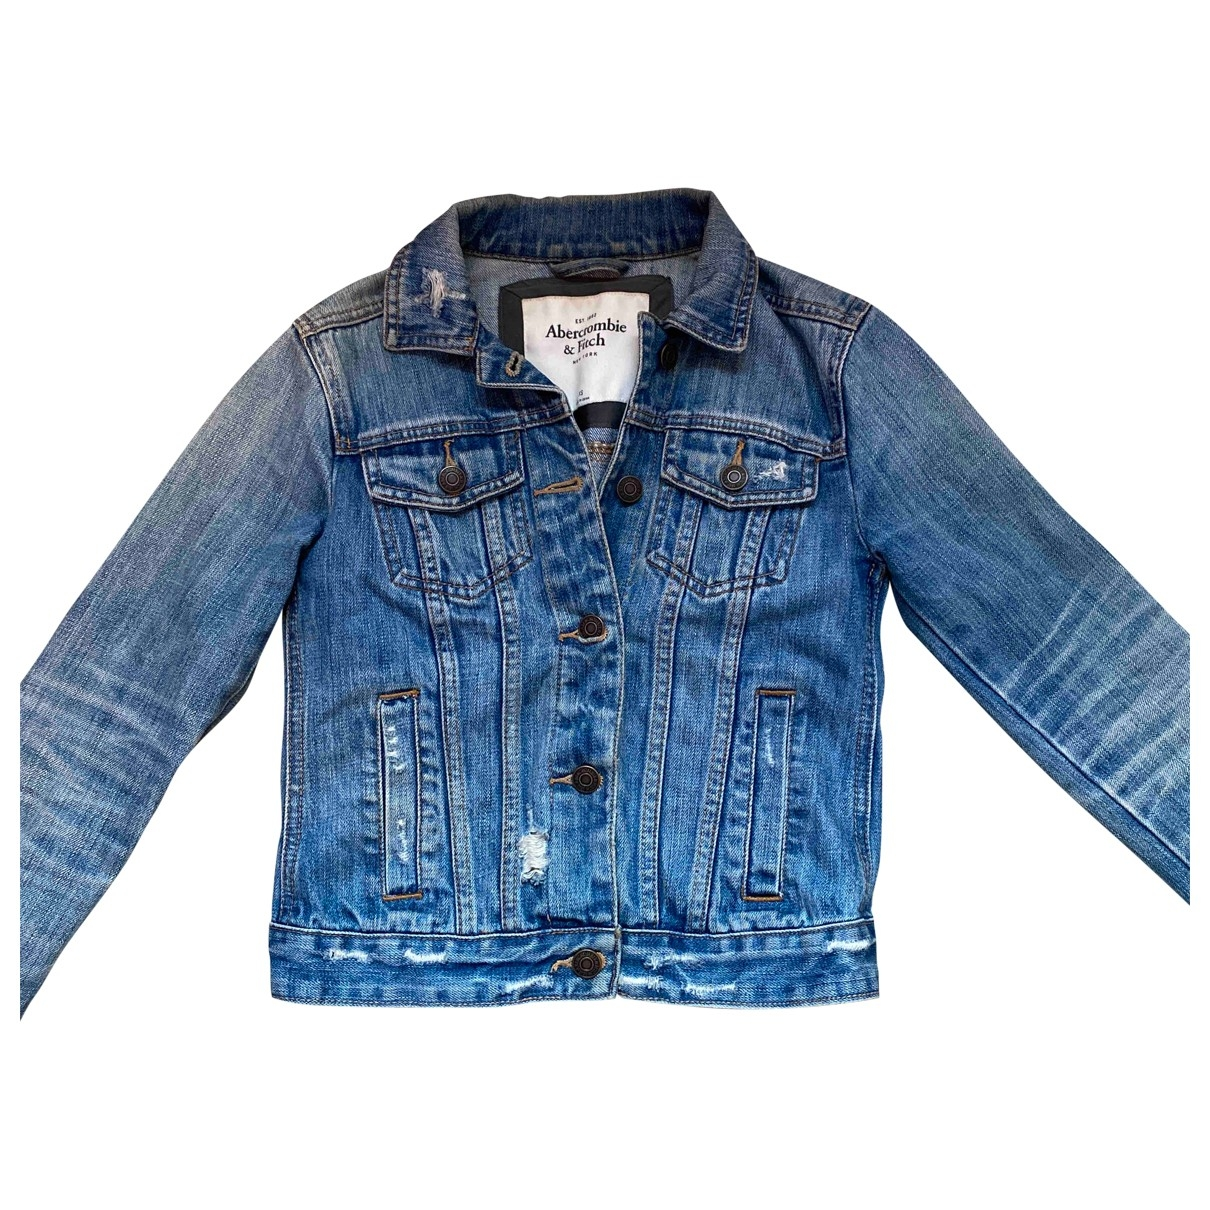 Abercrombie & Fitch \N Blue Denim - Jeans jacket & coat for Kids 14 years - S FR